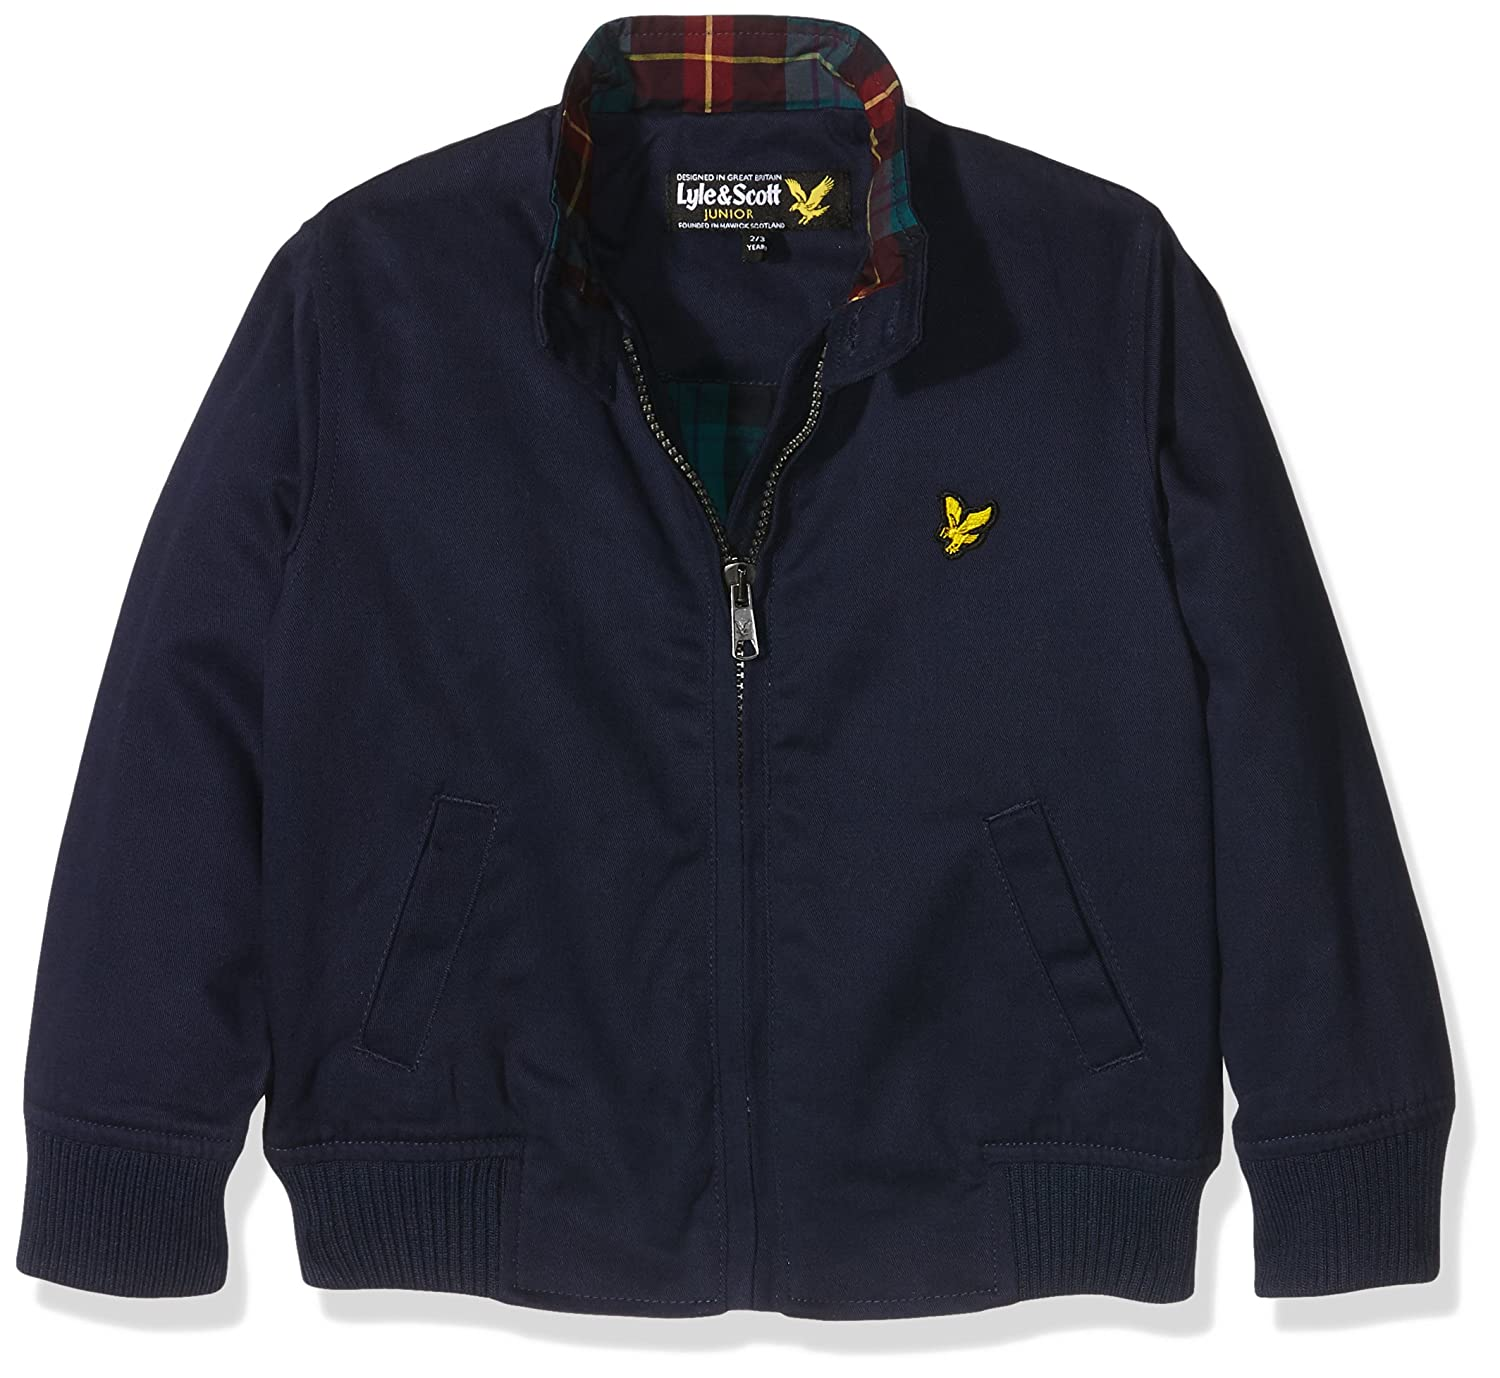 Lyle & Scott Jungen Jacke Harrington